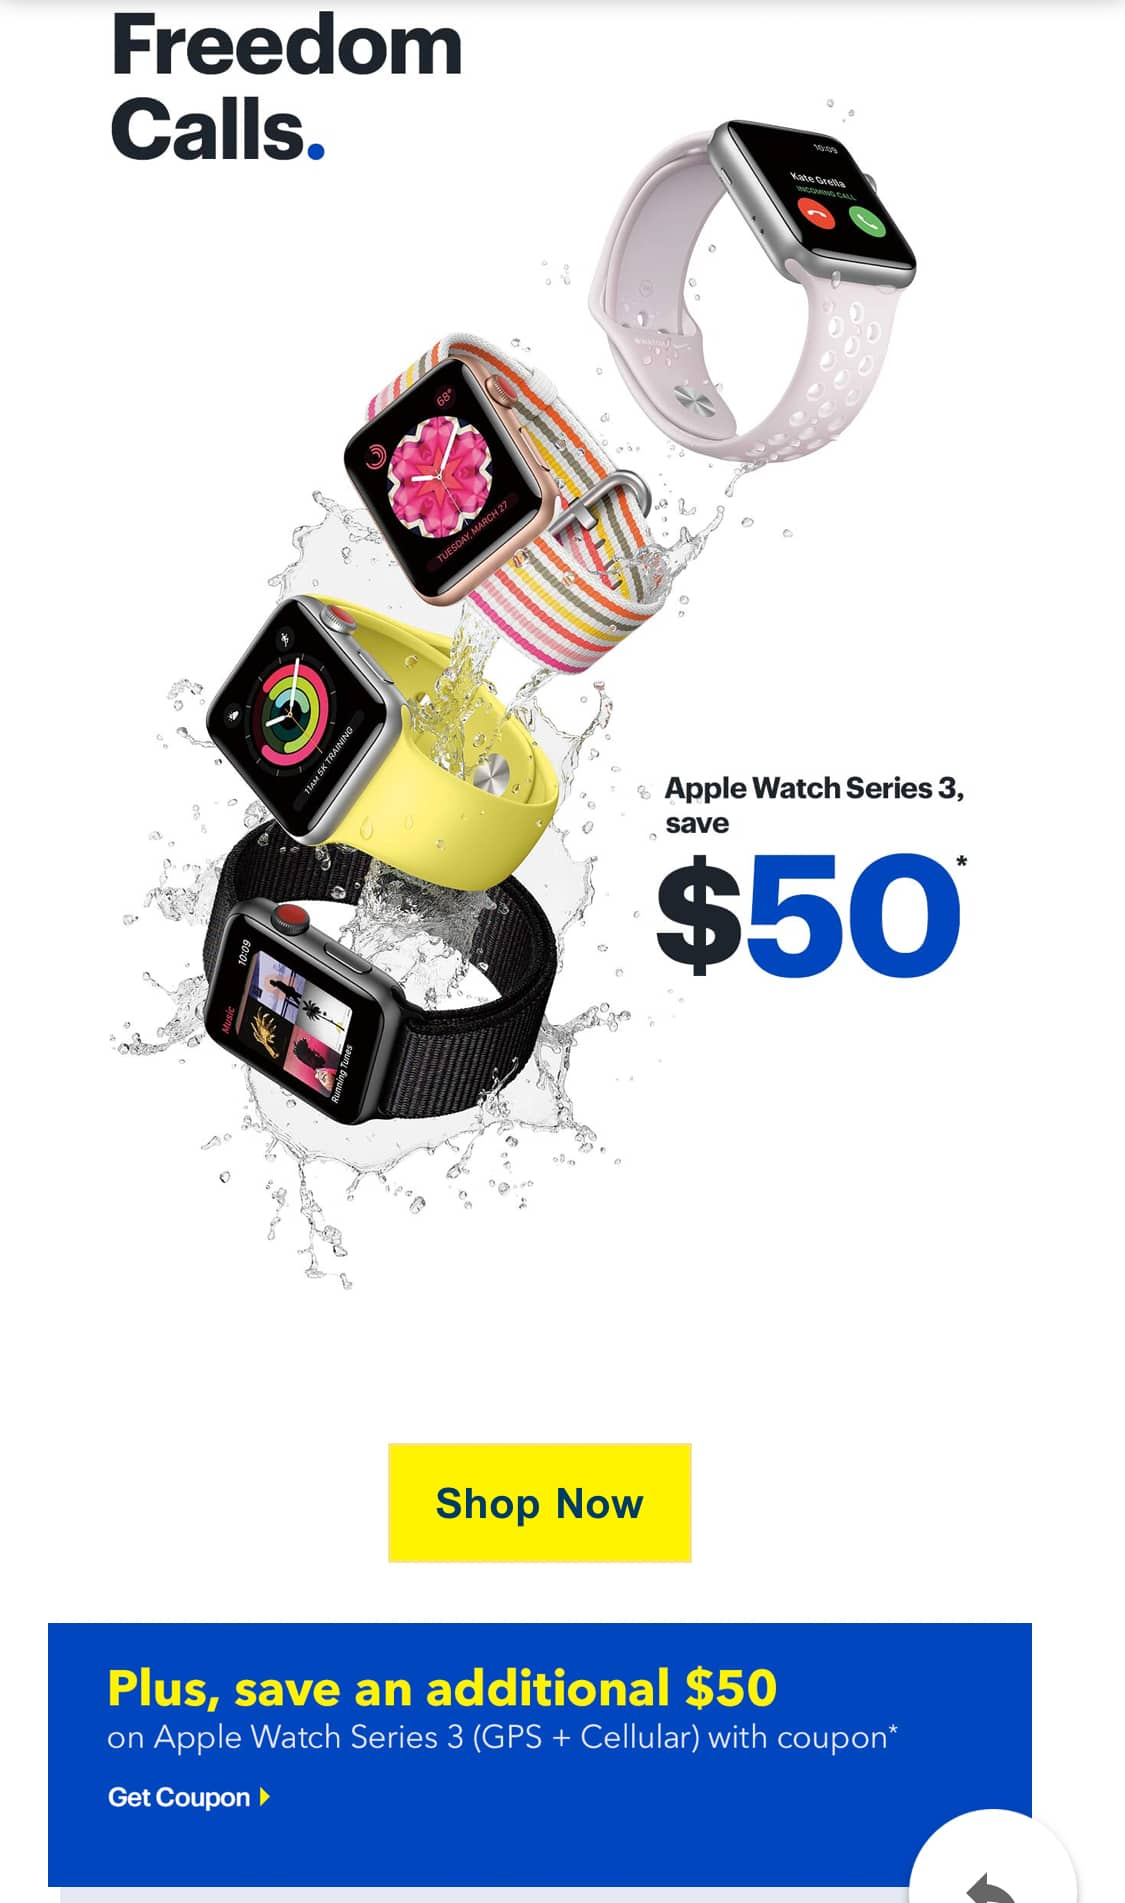 ad6312b3f998d Apple Watch Series 3 (GPS + Cellular) Additional  50 off with Best Buy  emailed Coupon (see screenshot)  299 - Slickdeals.net